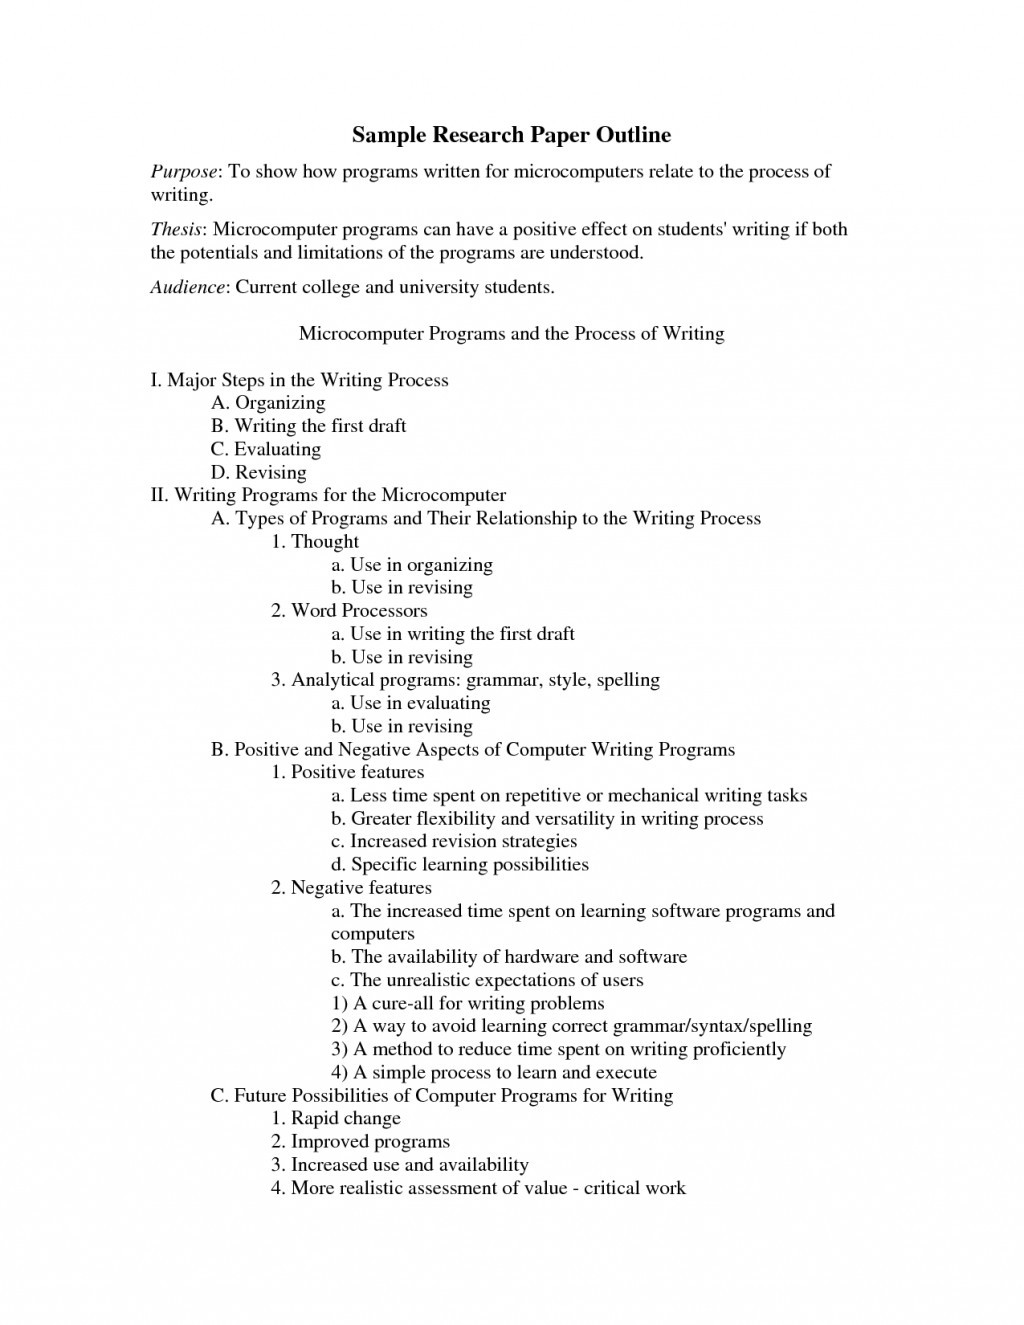 006 Apa Research Paper Outline Template College Examples 477364 Striking Free Blank Large